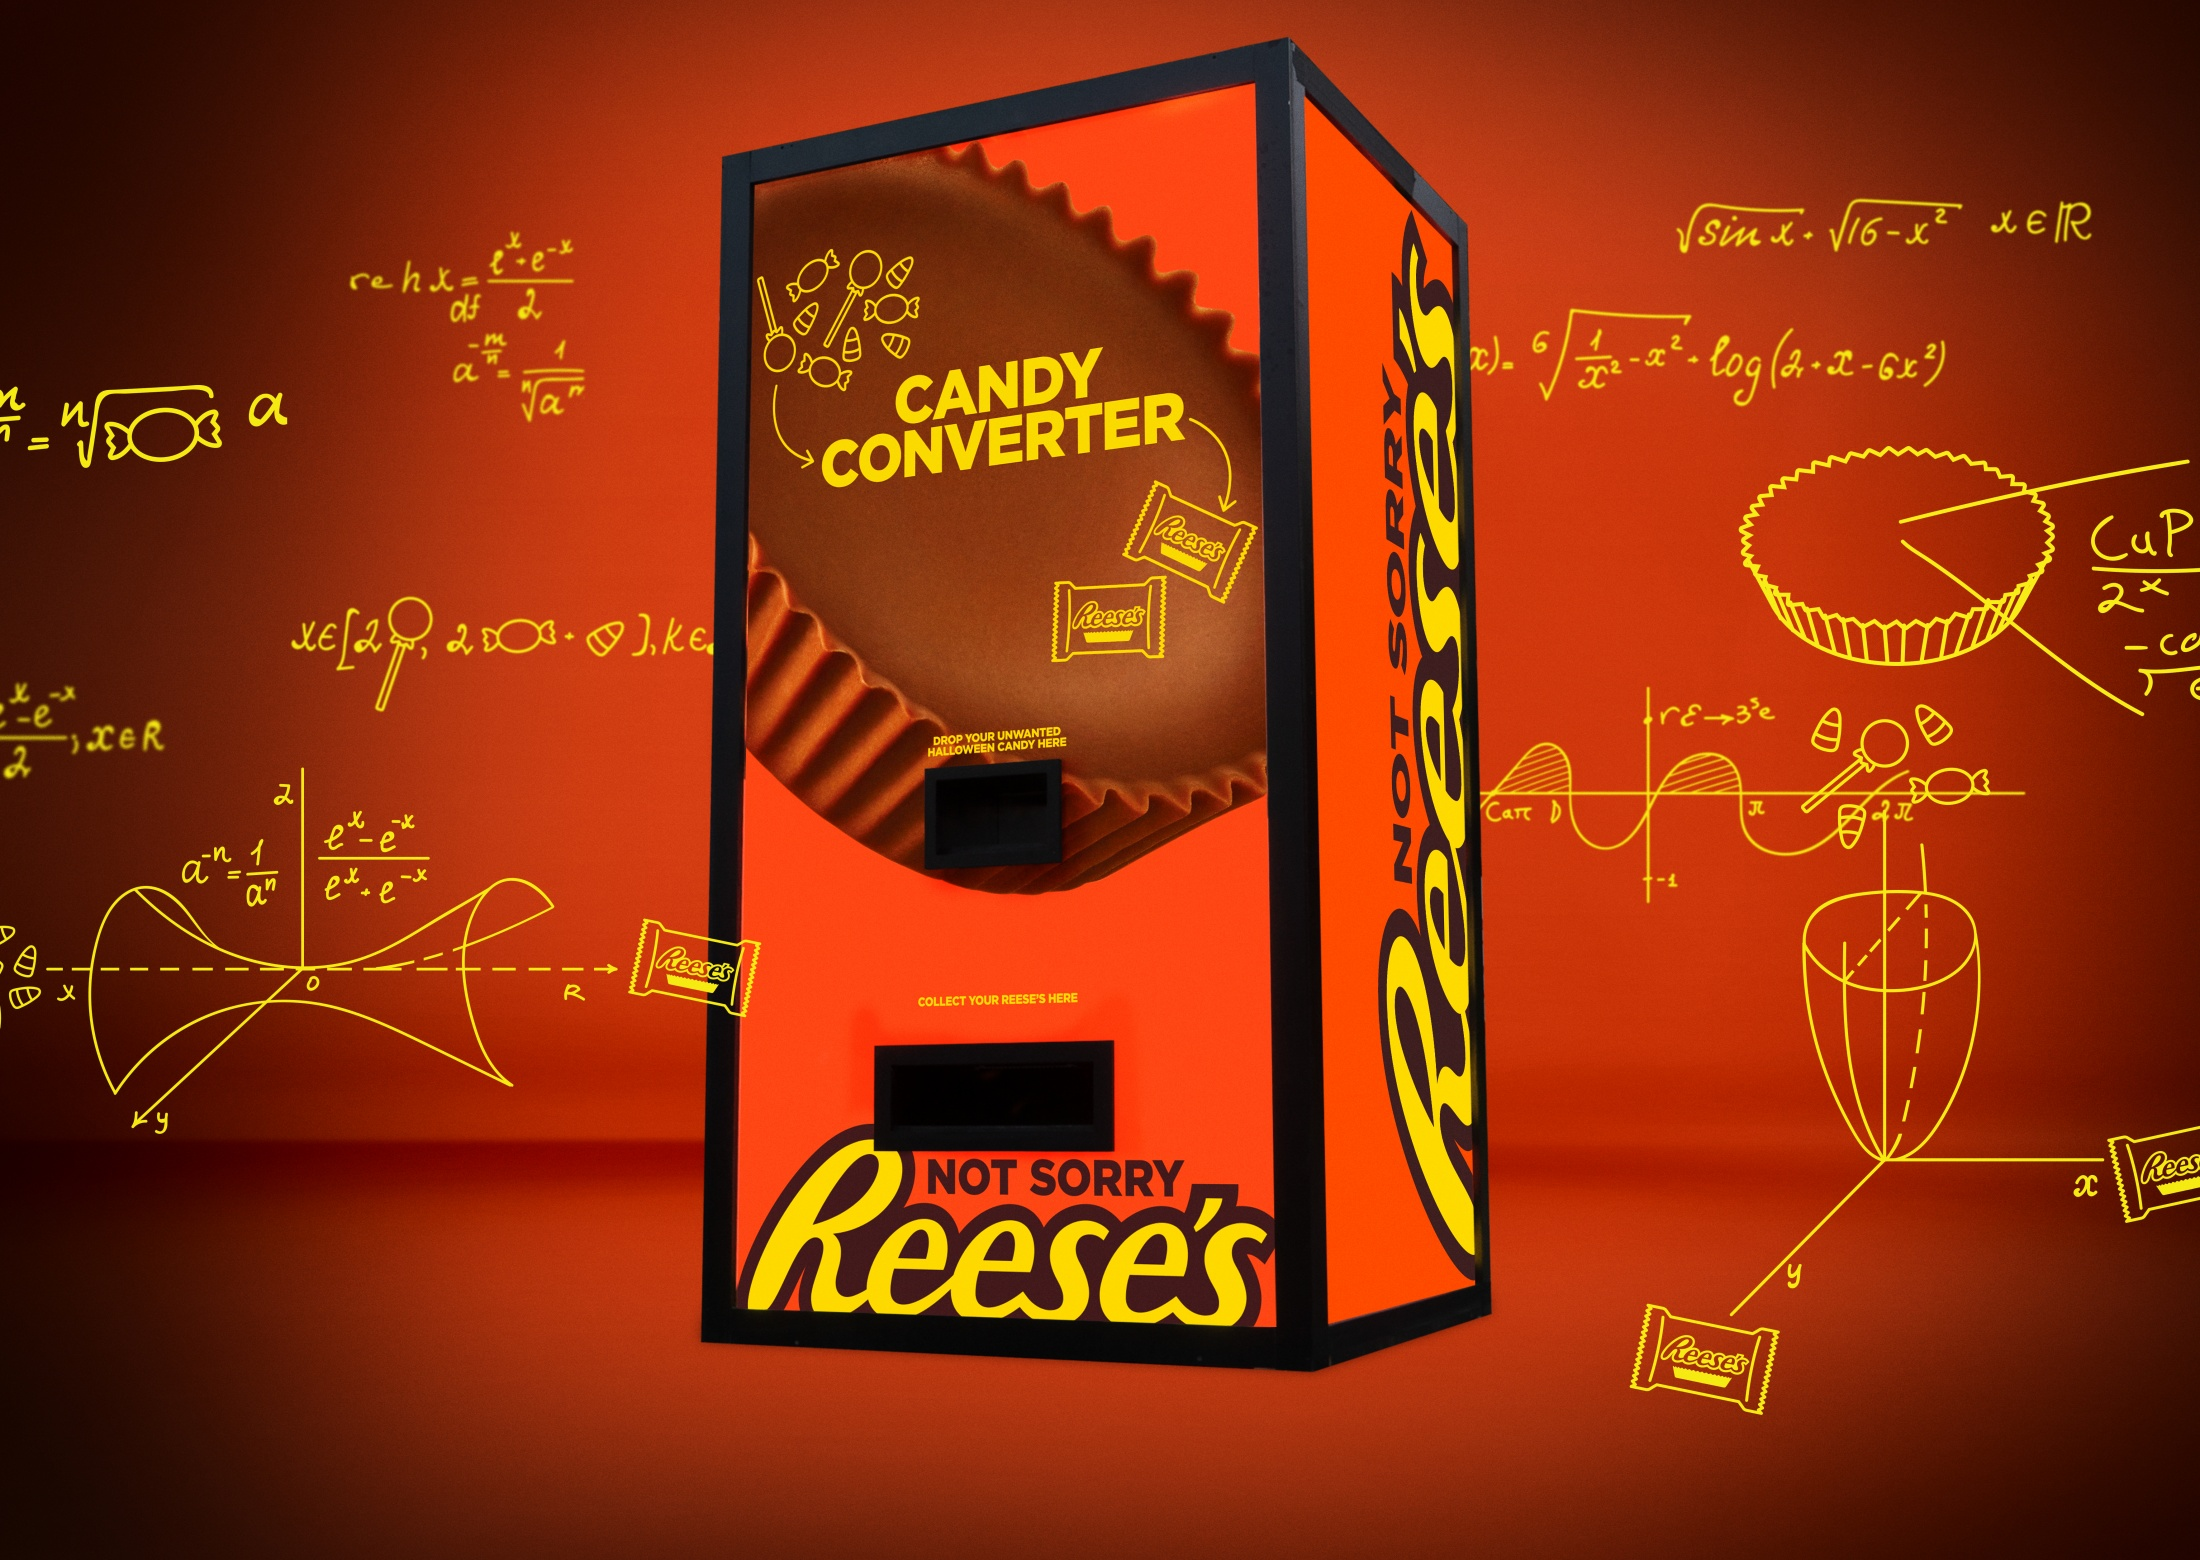 Thumbnail for The Reese's Candy Converter